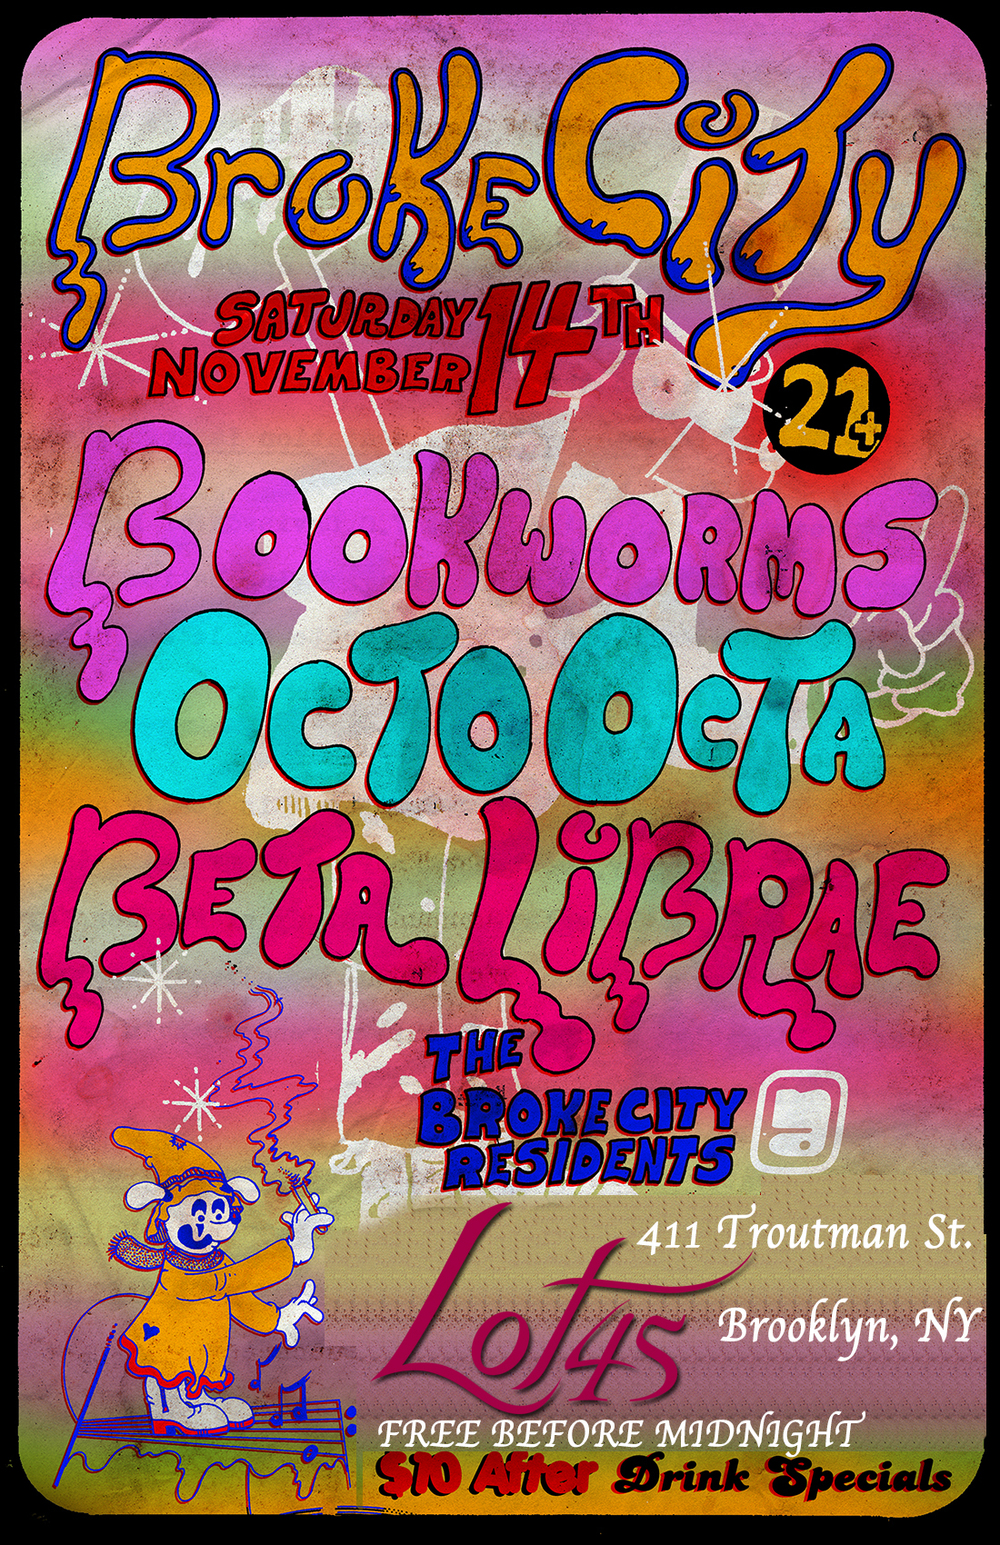 Broke City monthly party returns to Lot45 Nov 14th with 3 local talent DJs: Bookworms, Octo Octa, & Beta Librae. Expect deep soulful house and psychedelic techno